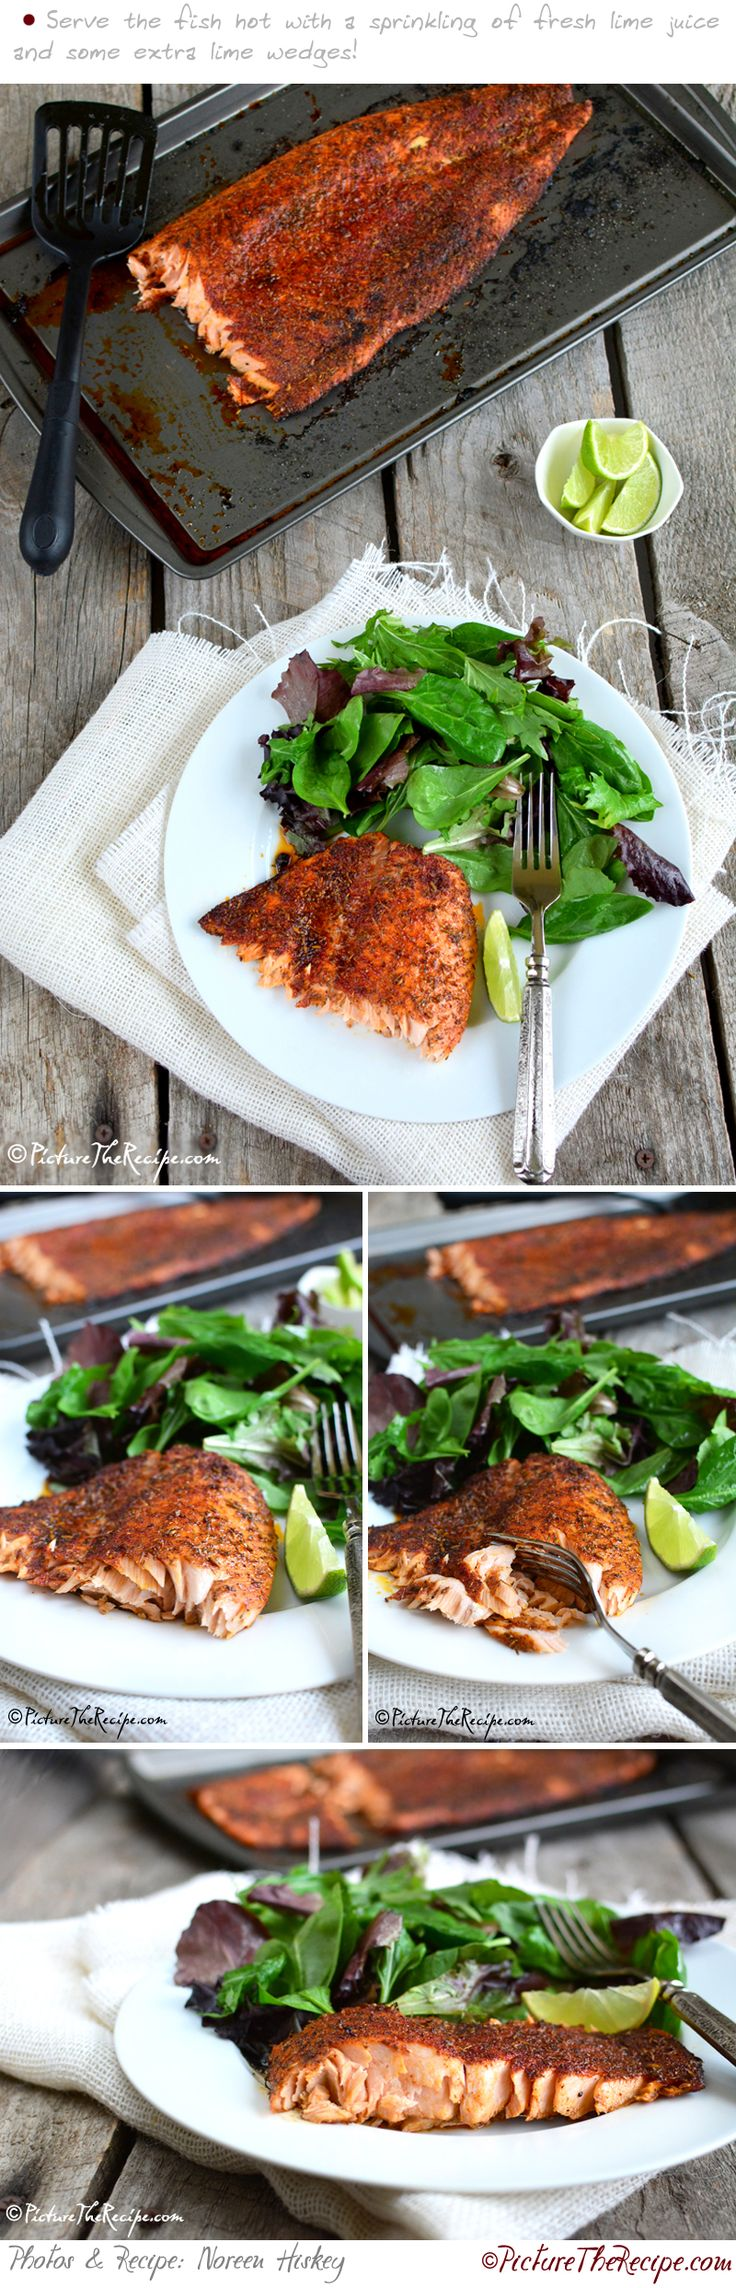 Blackened Salmon (Homemade Seasoning) | PictureTheRecipe.com